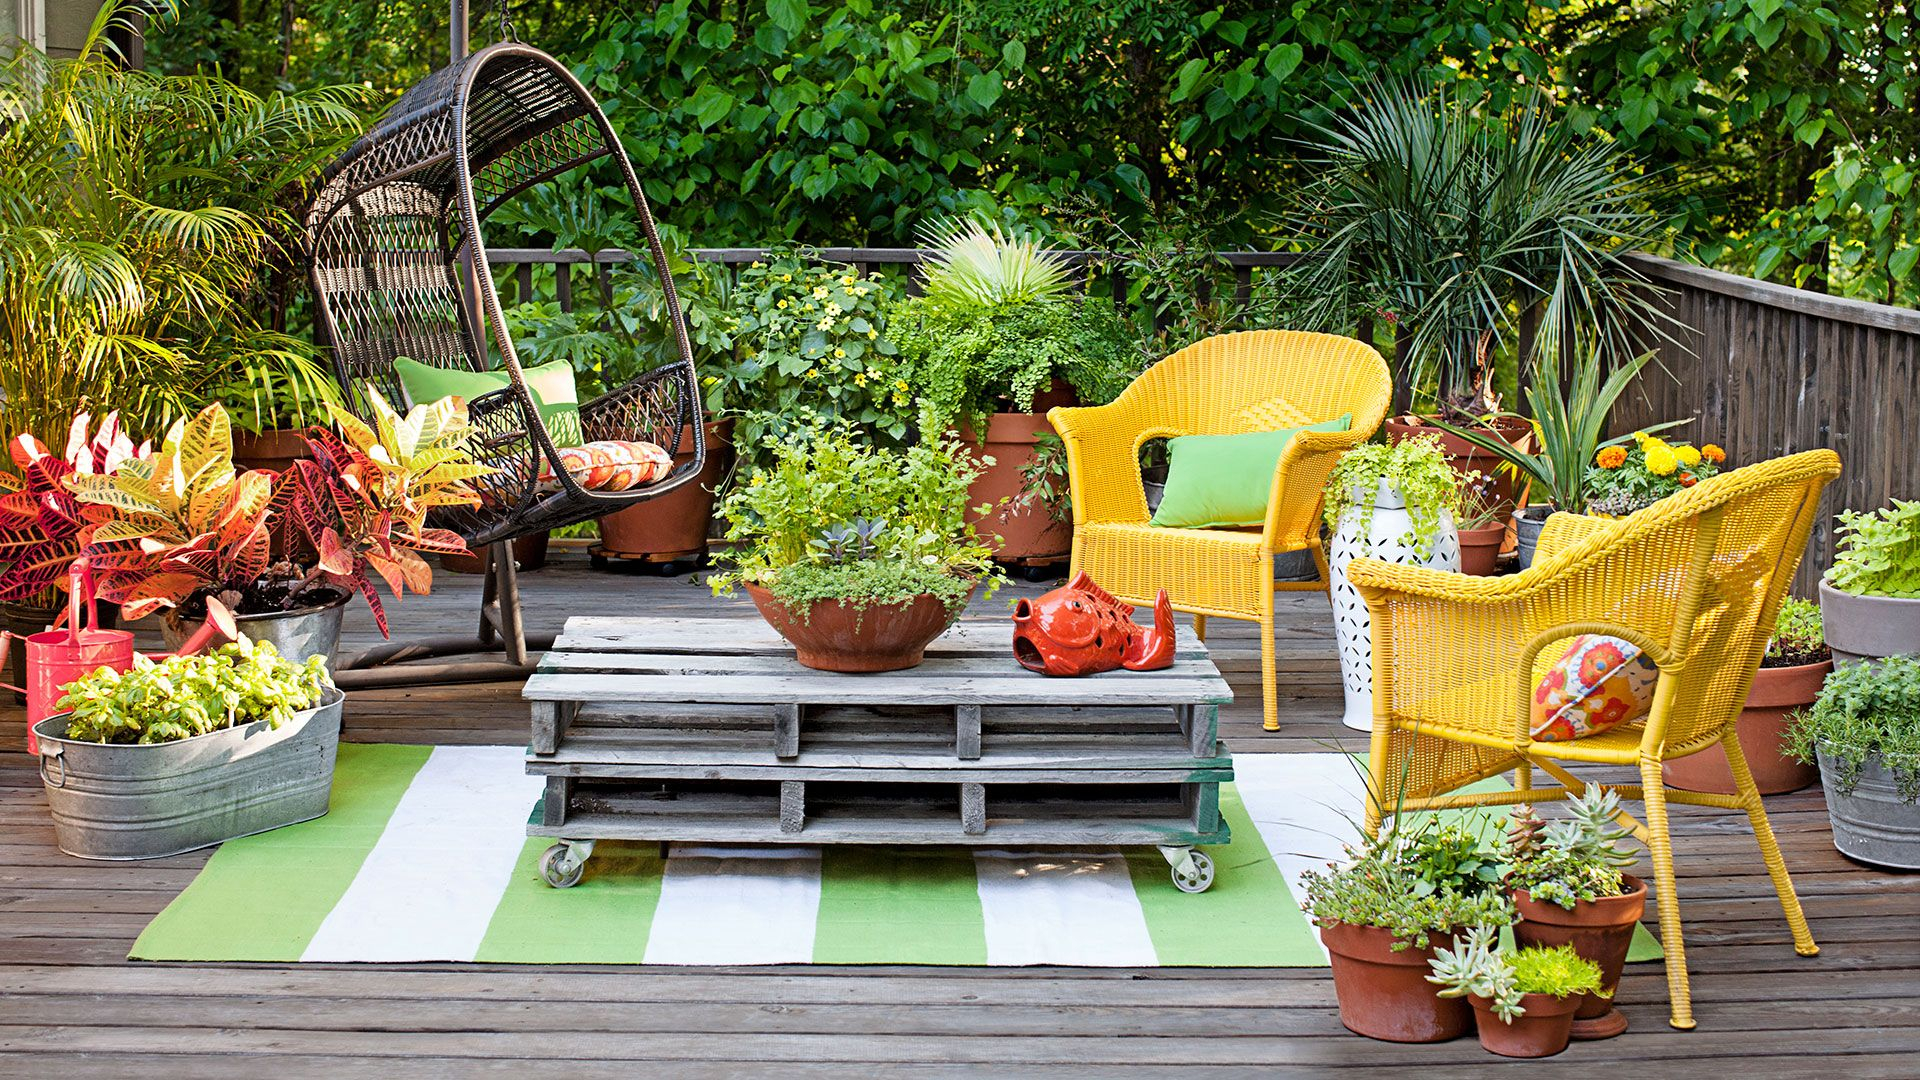 29 Backyard Decorating Ideas Easy Gardening Tips And Diy Projects inside Backyard Decorating Ideas On A Budget